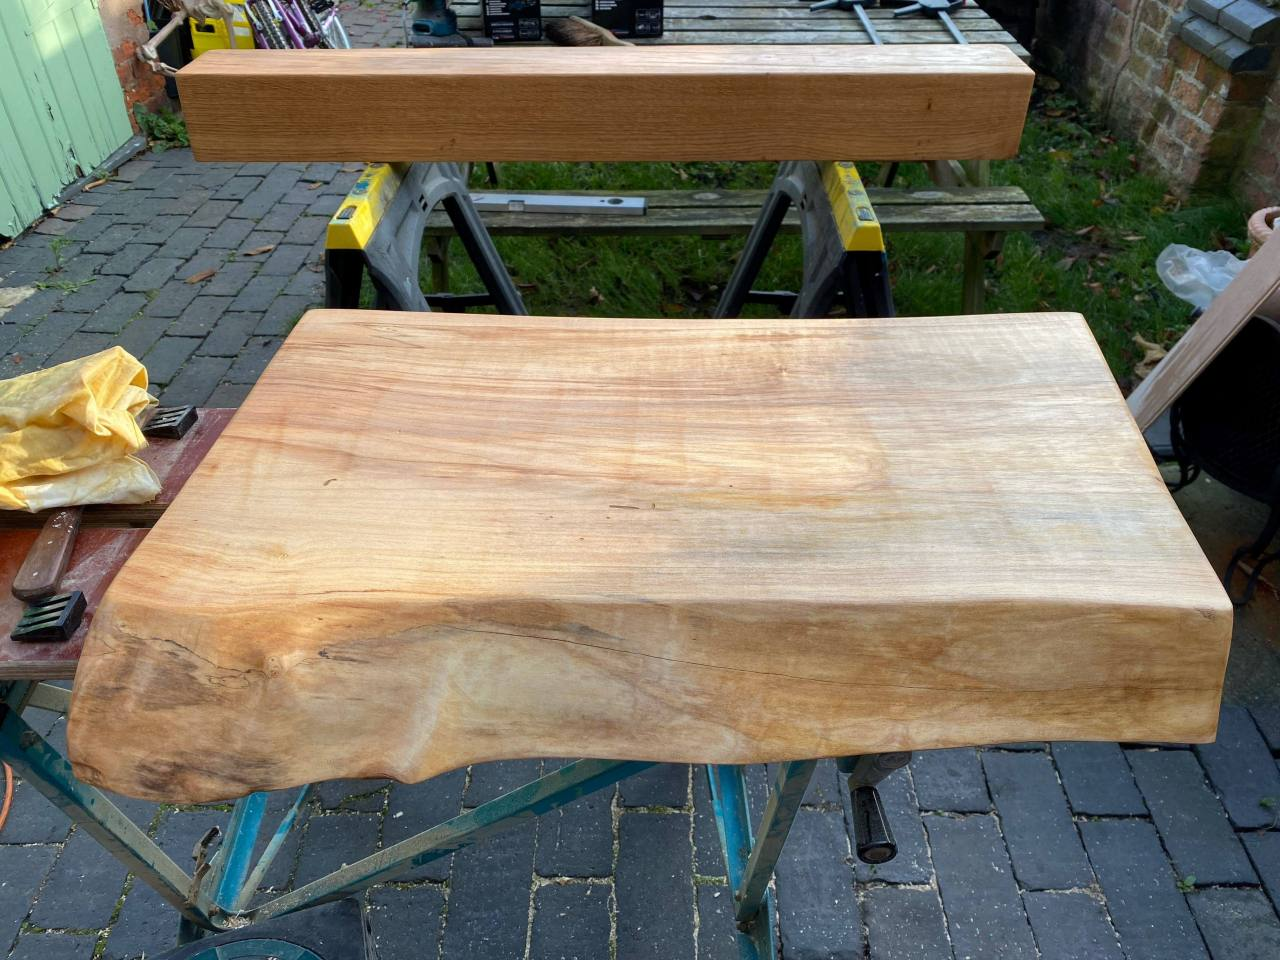 Image for: Chopping board envy…